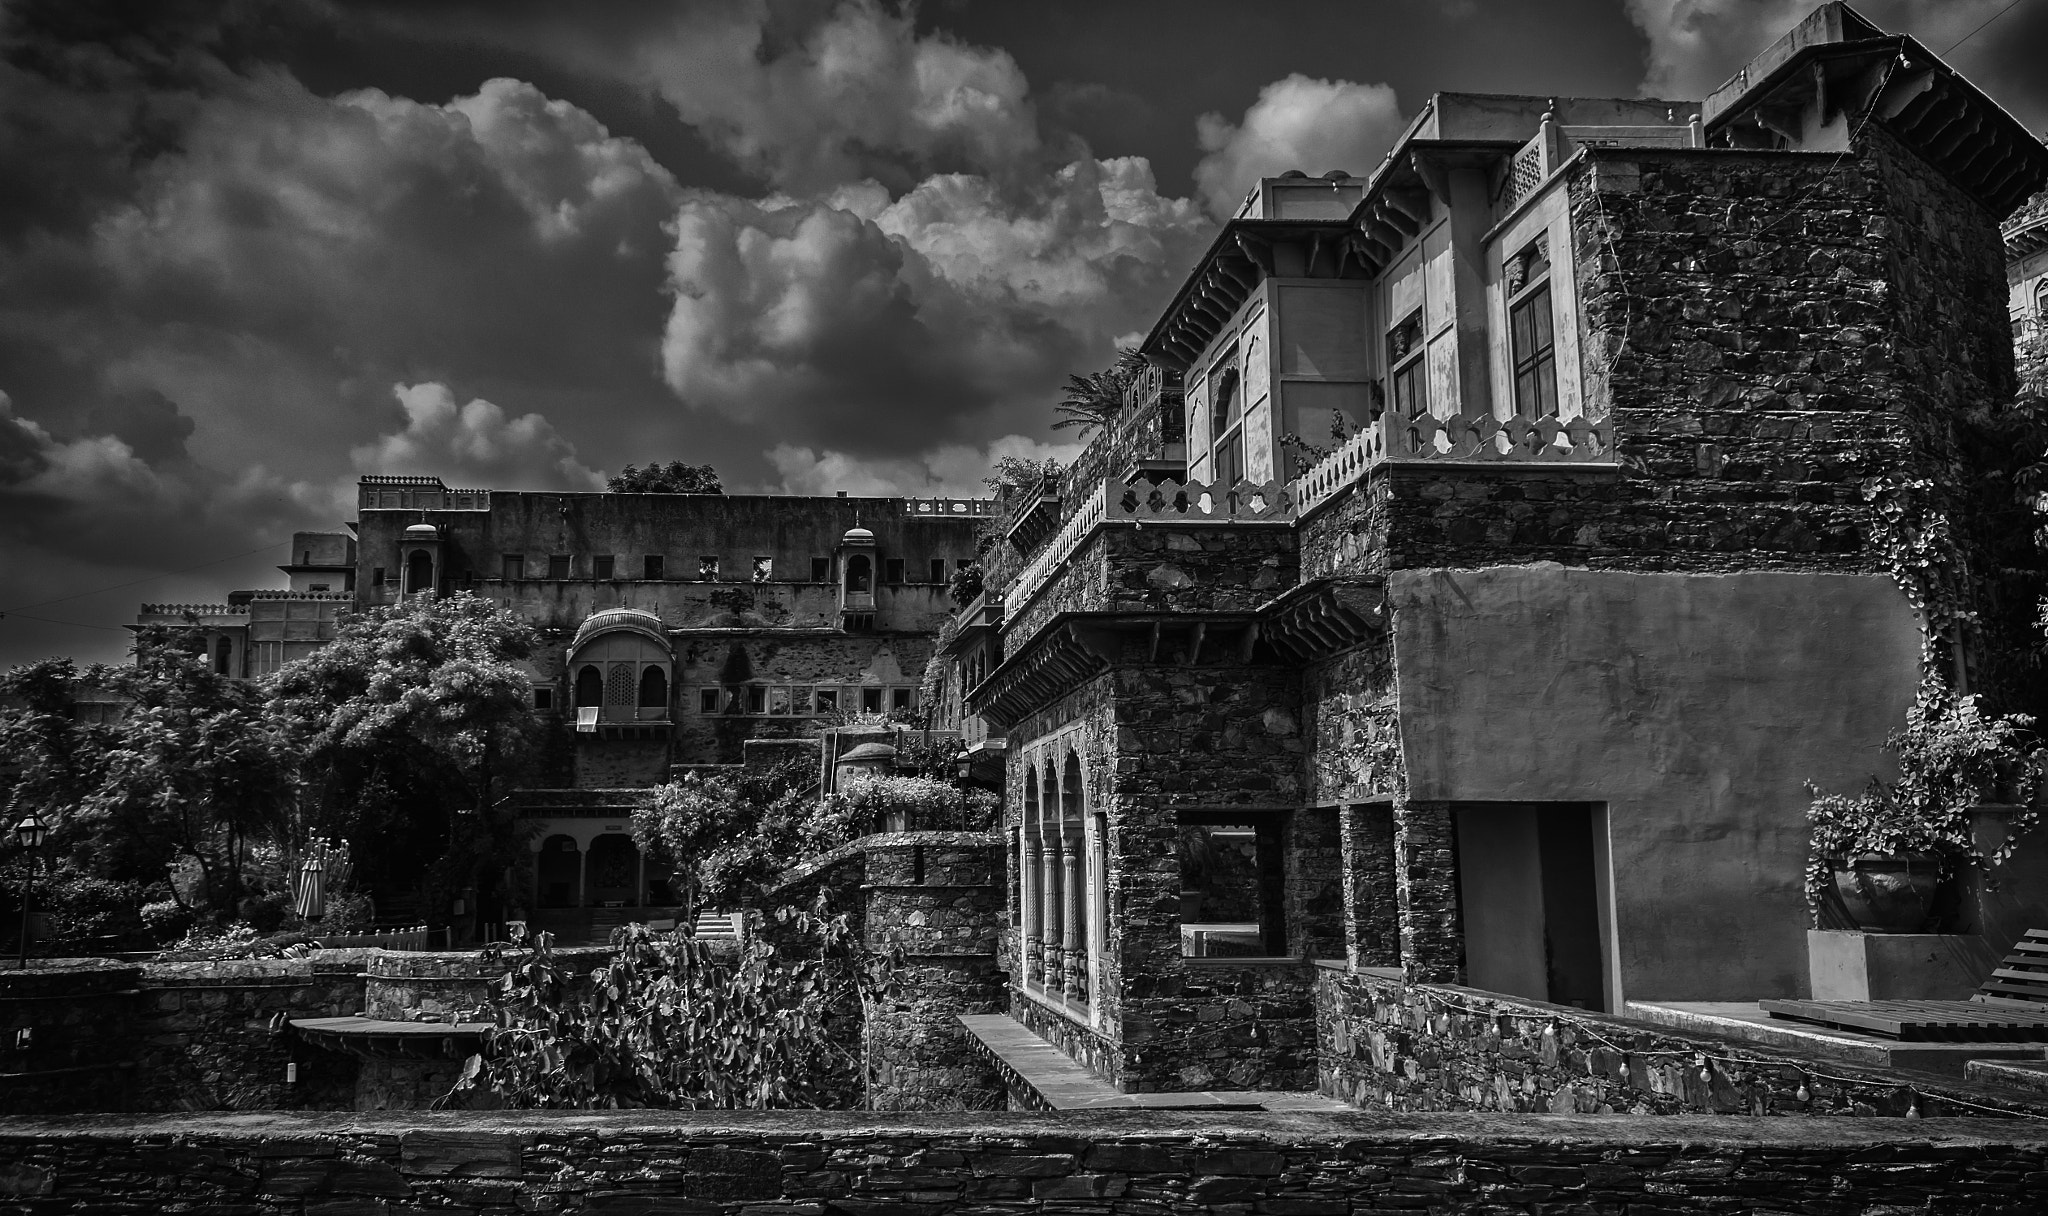 Photograph Dark Days and Cloudy Skies by Kshitij Aggarwal on 500px